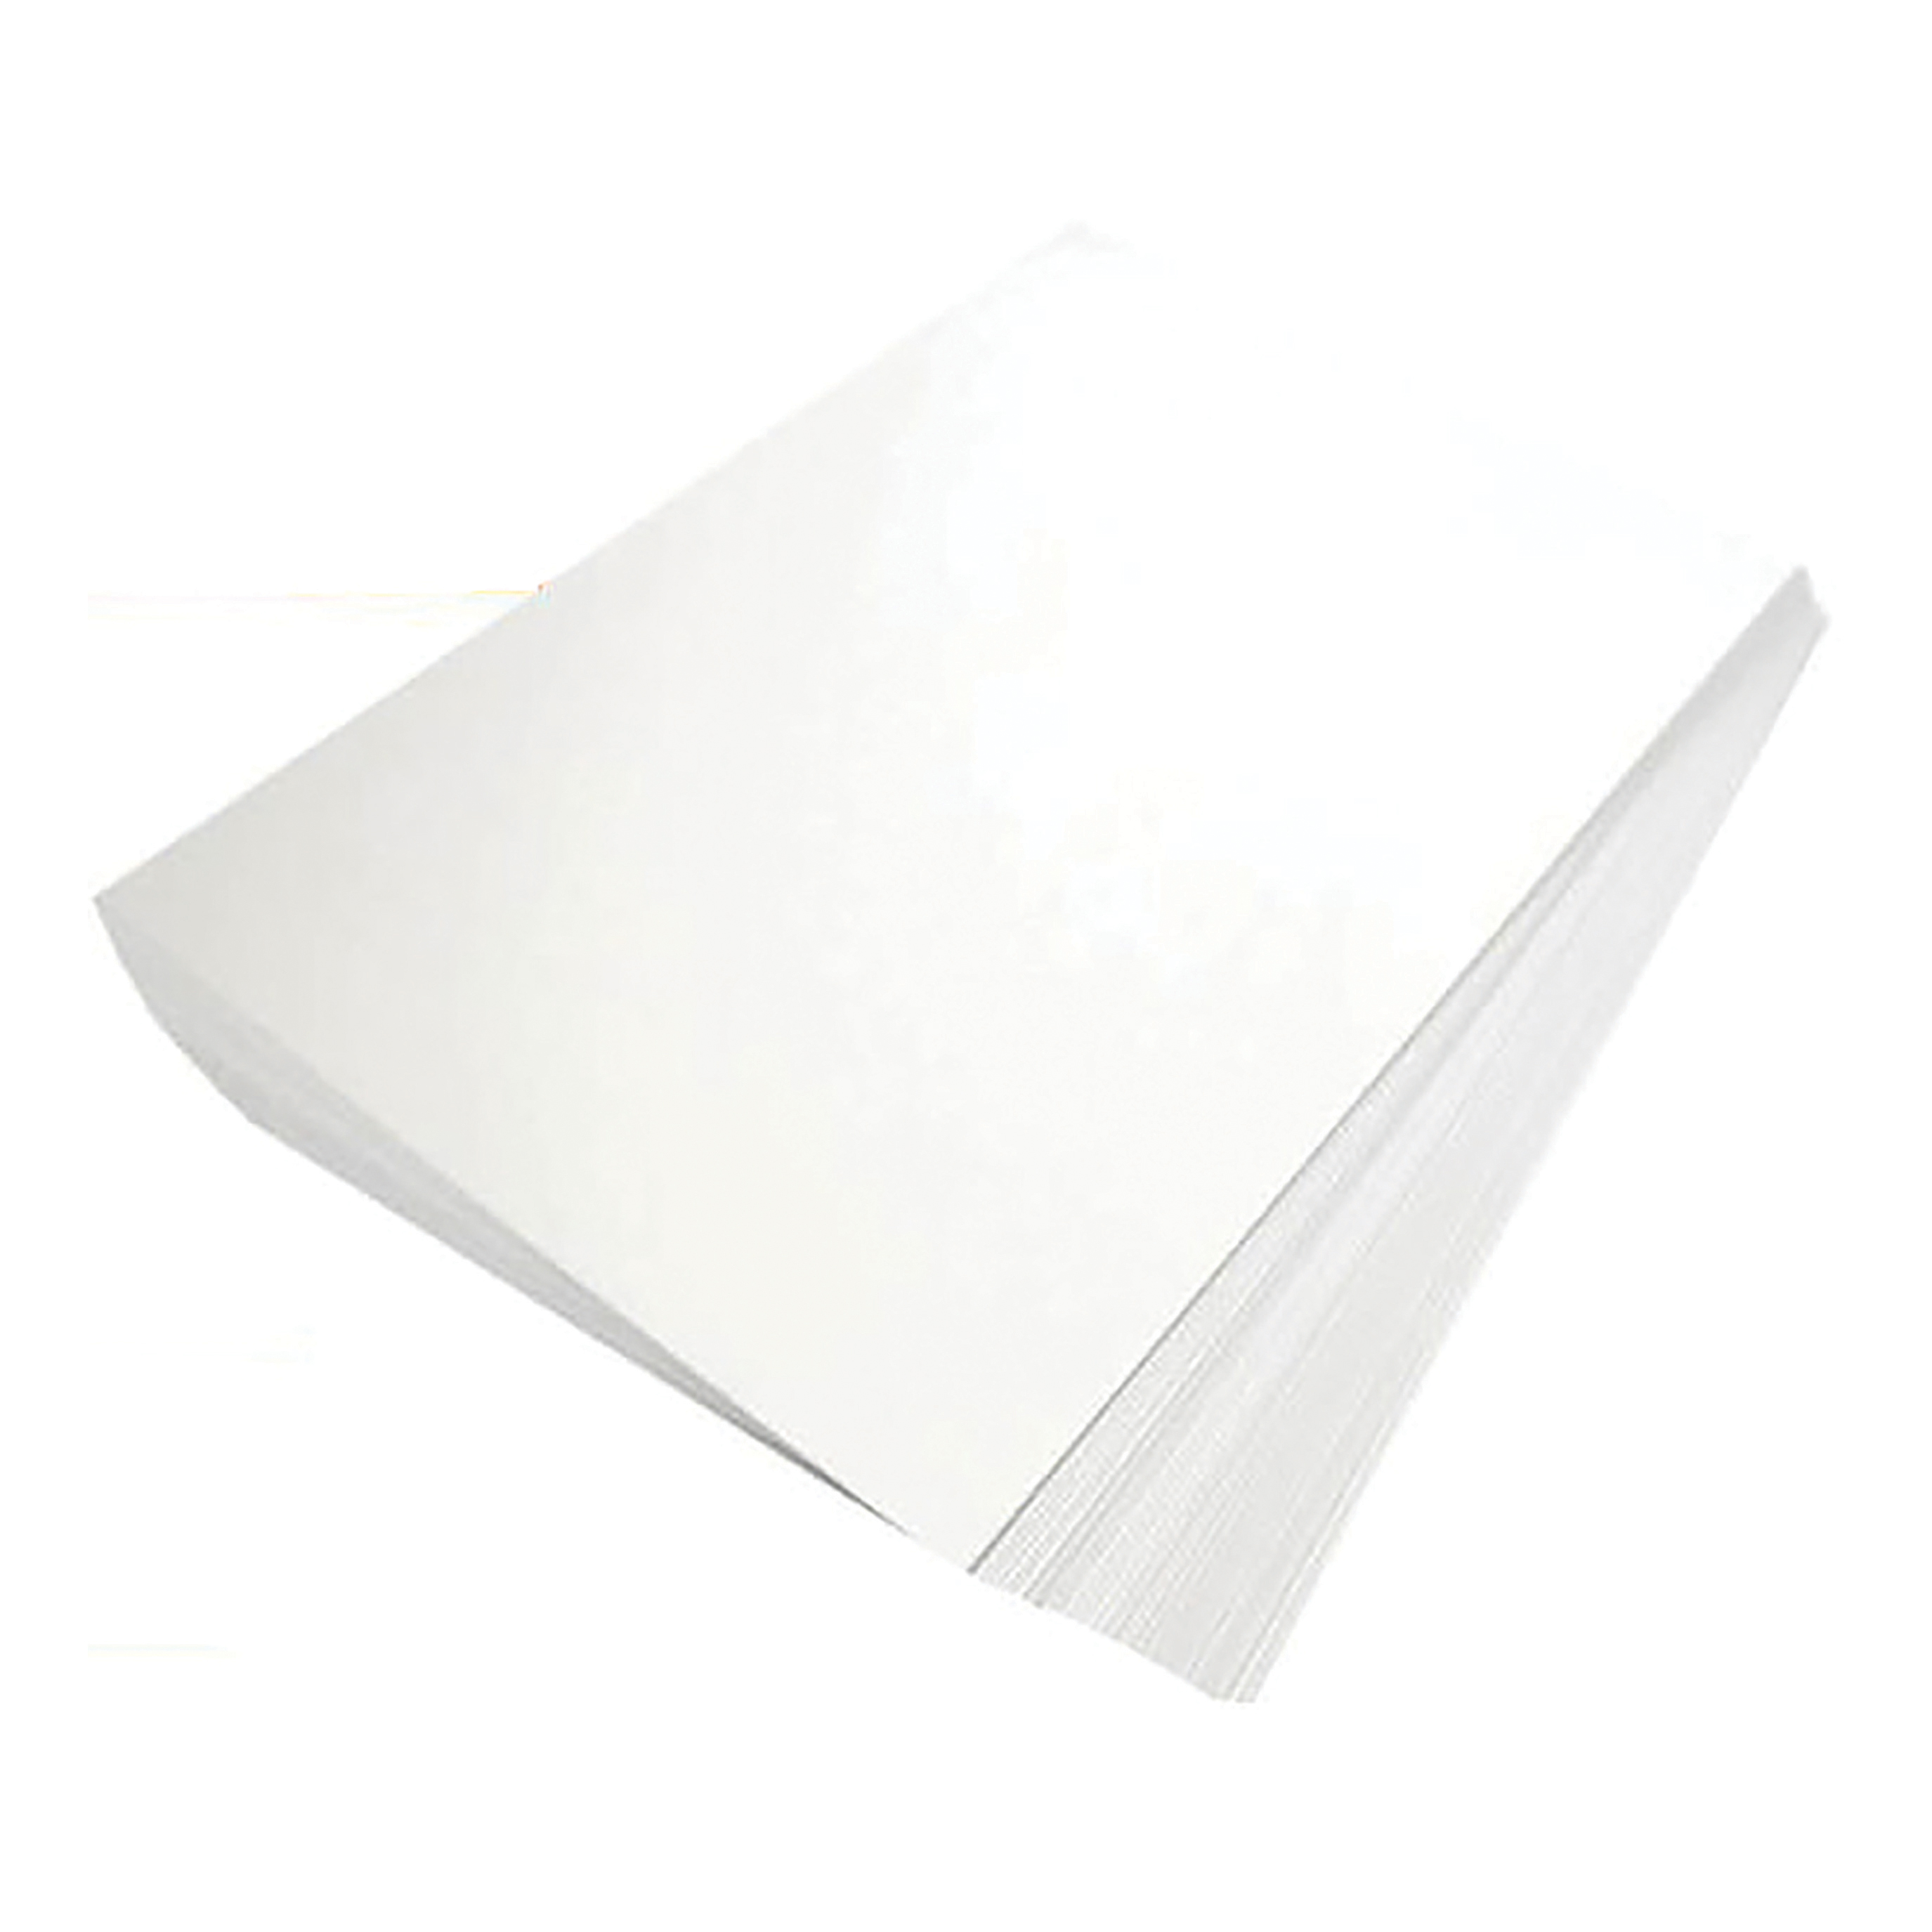 A4 5 Star Elite Premium Business Paper Laid Finish Ream-Wrapped 100gsm A4 High White [500 Sheets]